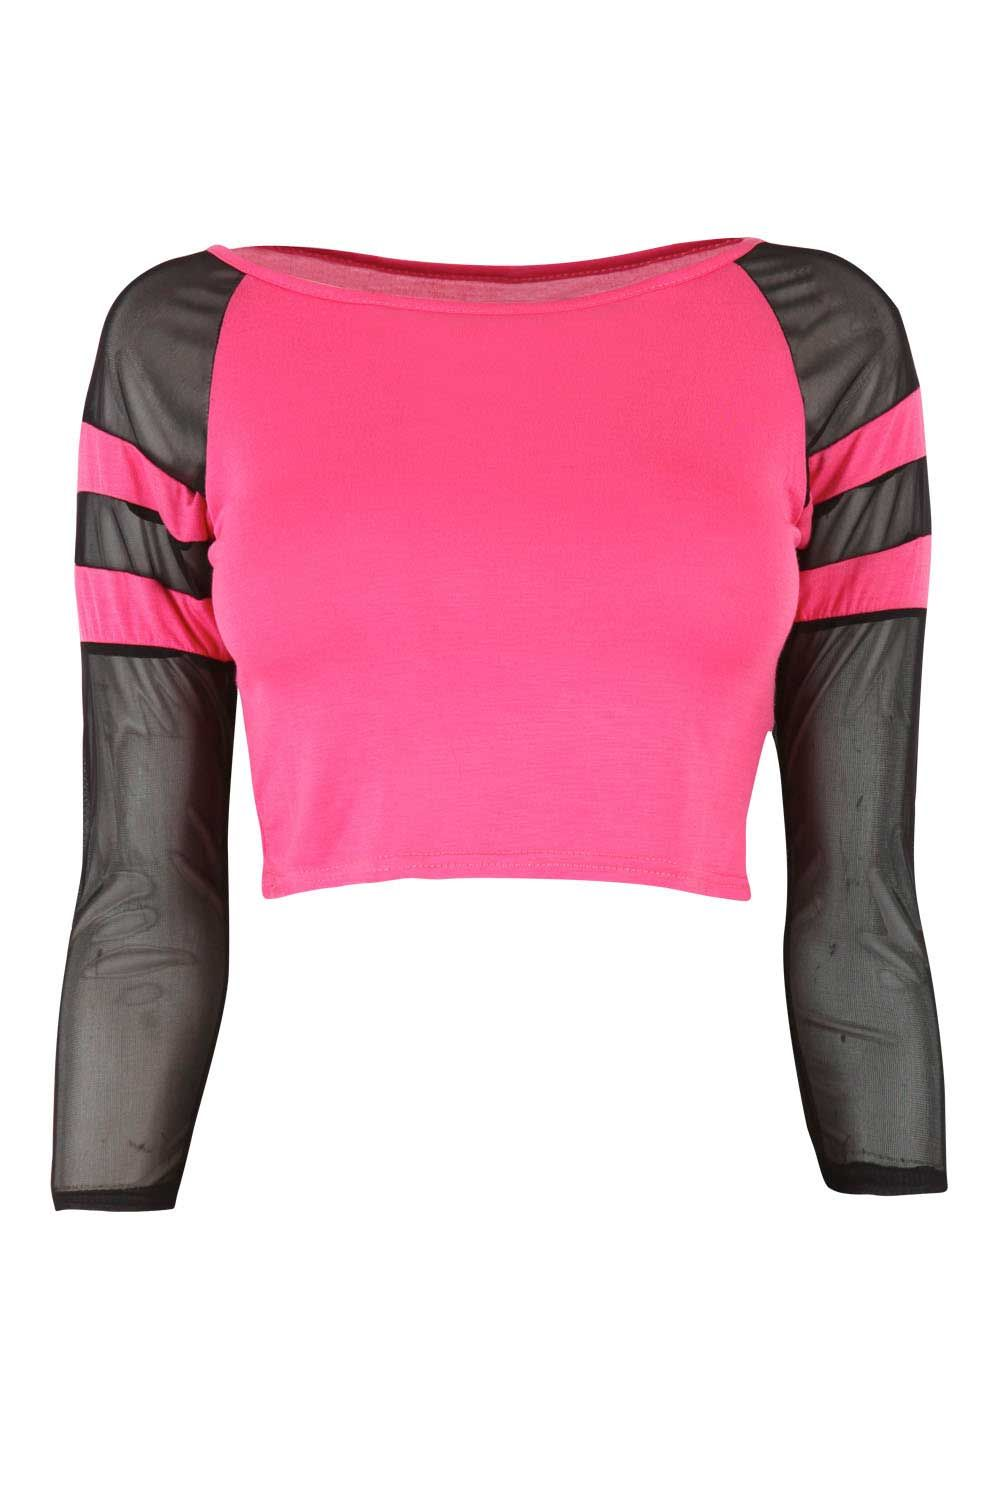 Coral Crop Top with Mesh Panels at Fashion Union